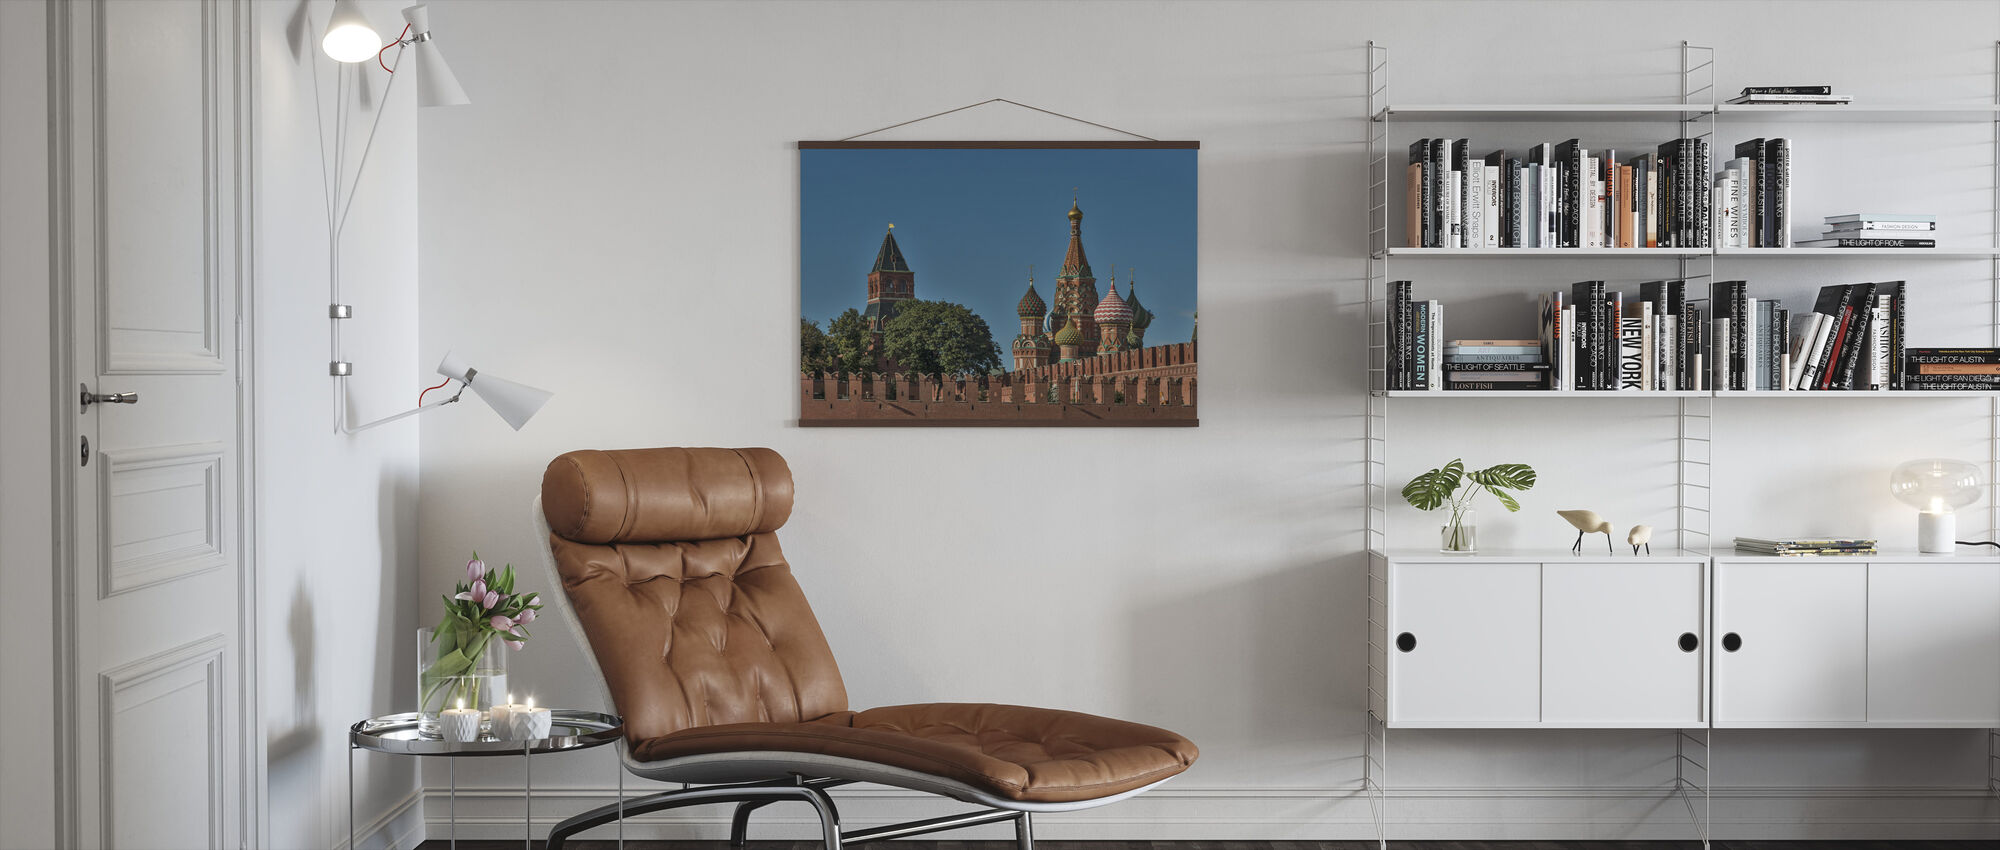 Spasskaya Clock Tower, Moscow - Poster - Living Room